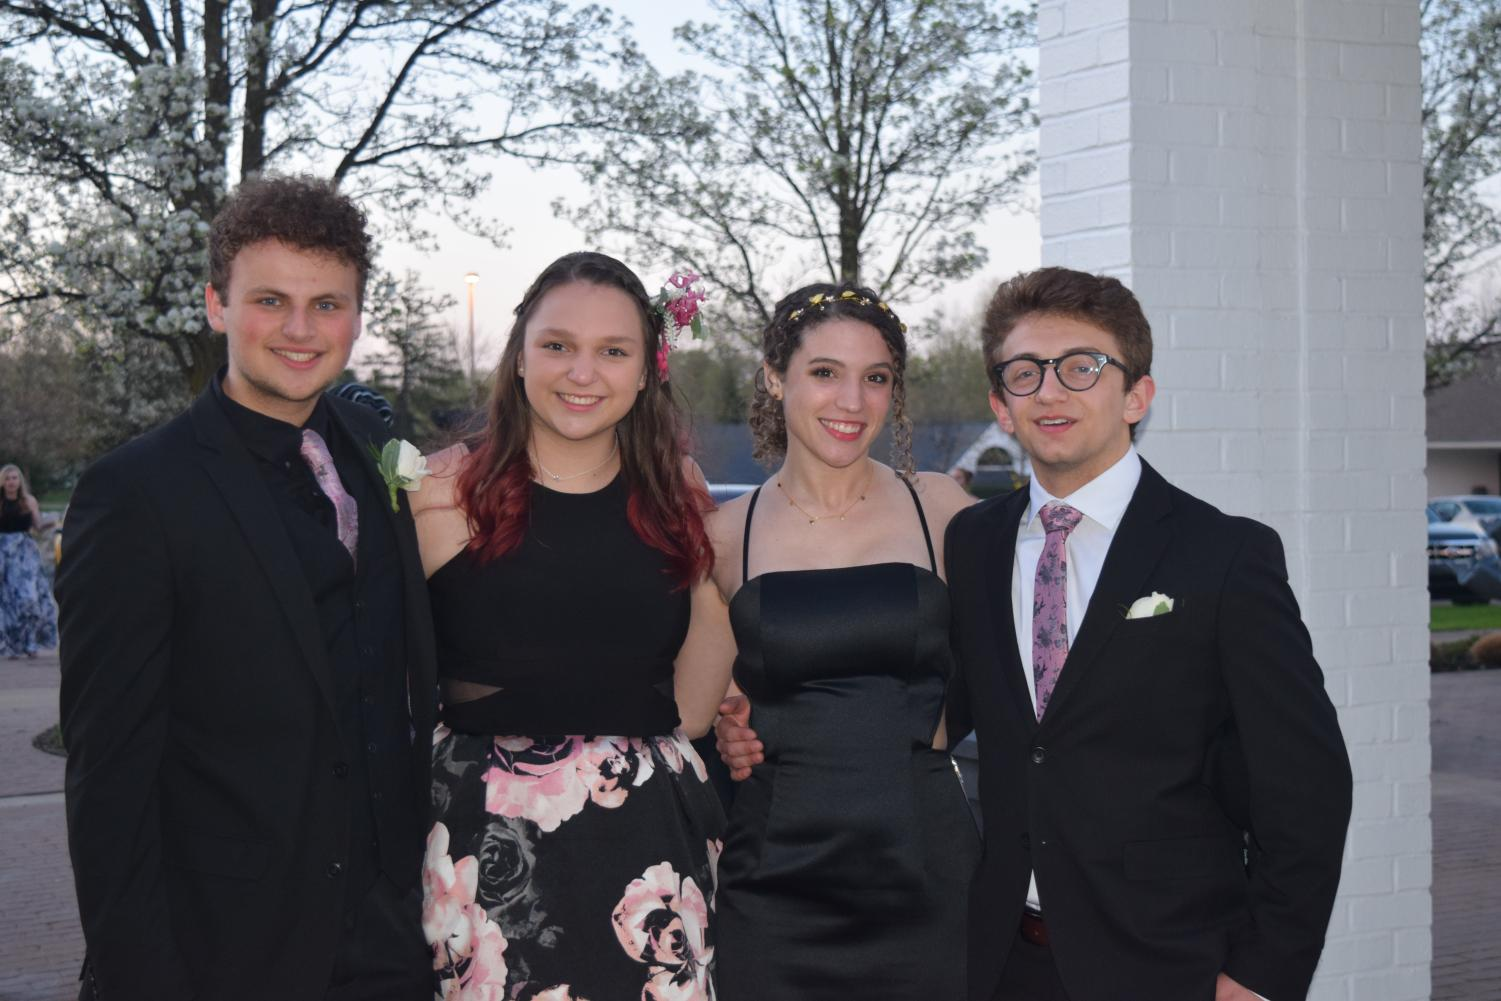 Aris+Chalin%2C+Isabel+Espinosa%2C+Andrea+Schnell+and+Jonah+Eichner+pose+before+entering+prom%2C+held+at+Washtenaw+Golf+Club.+